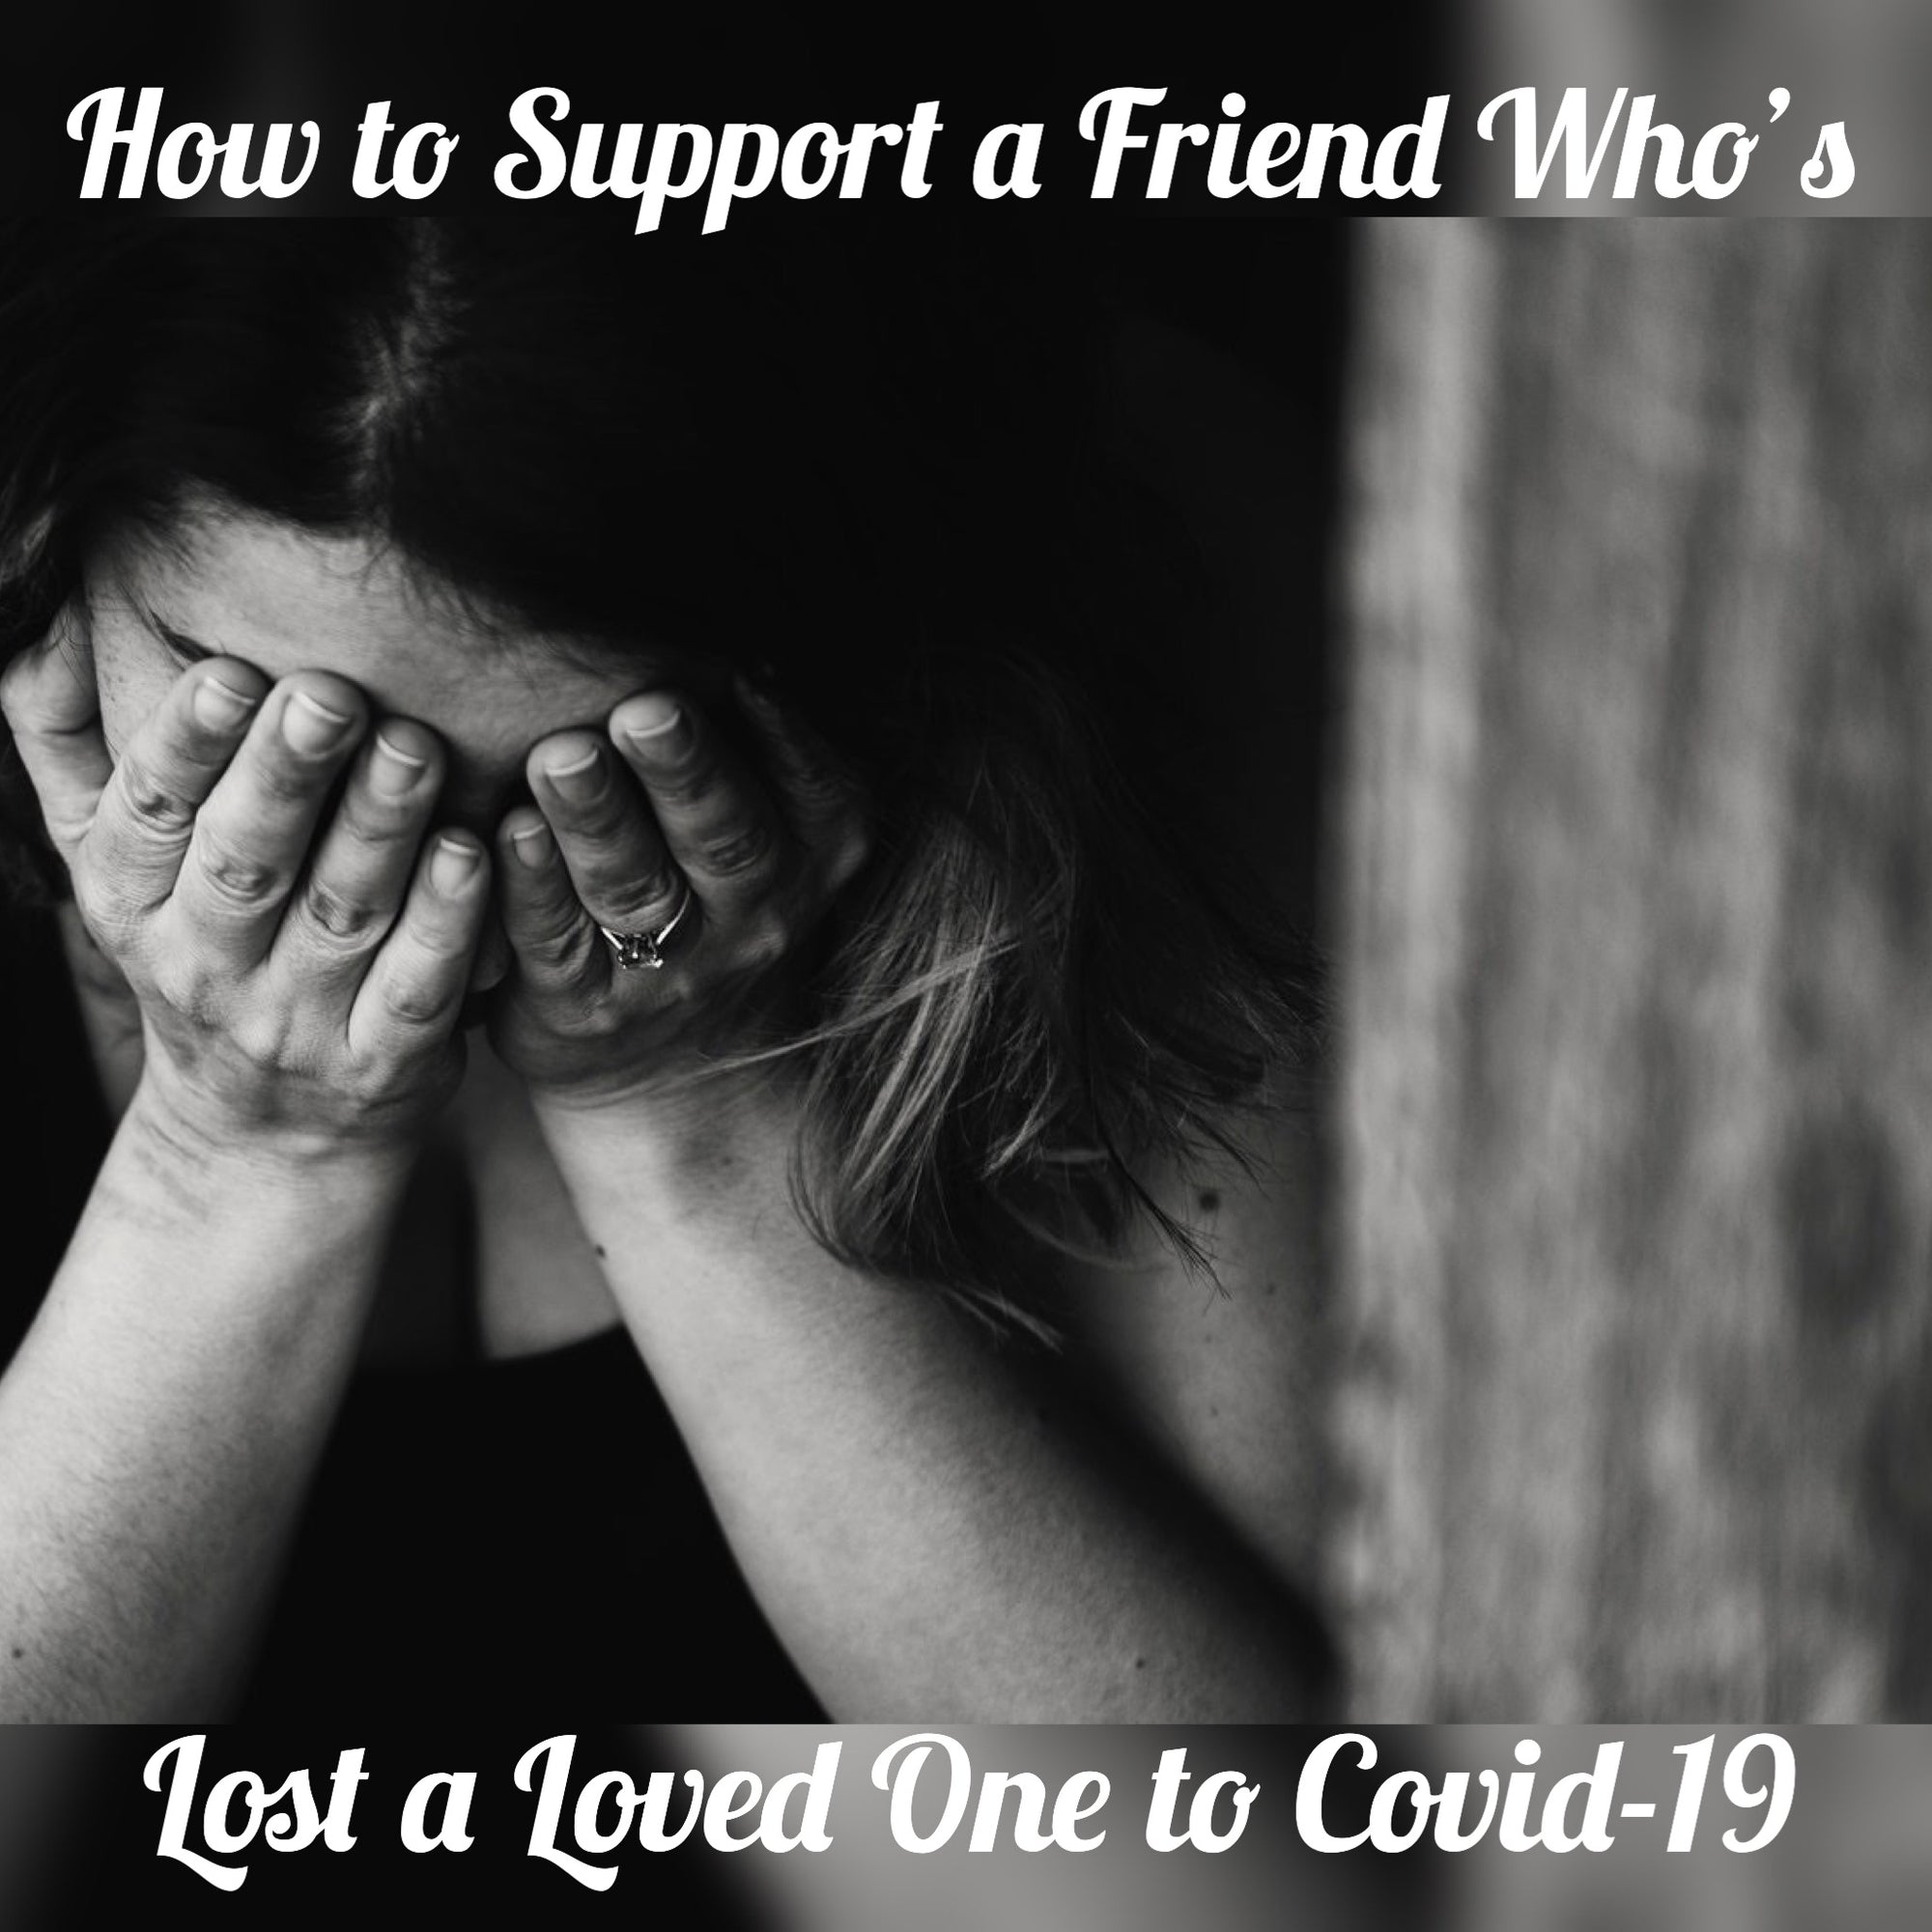 How to Support a Friend or Family That Has Lost Someone to Covid-19